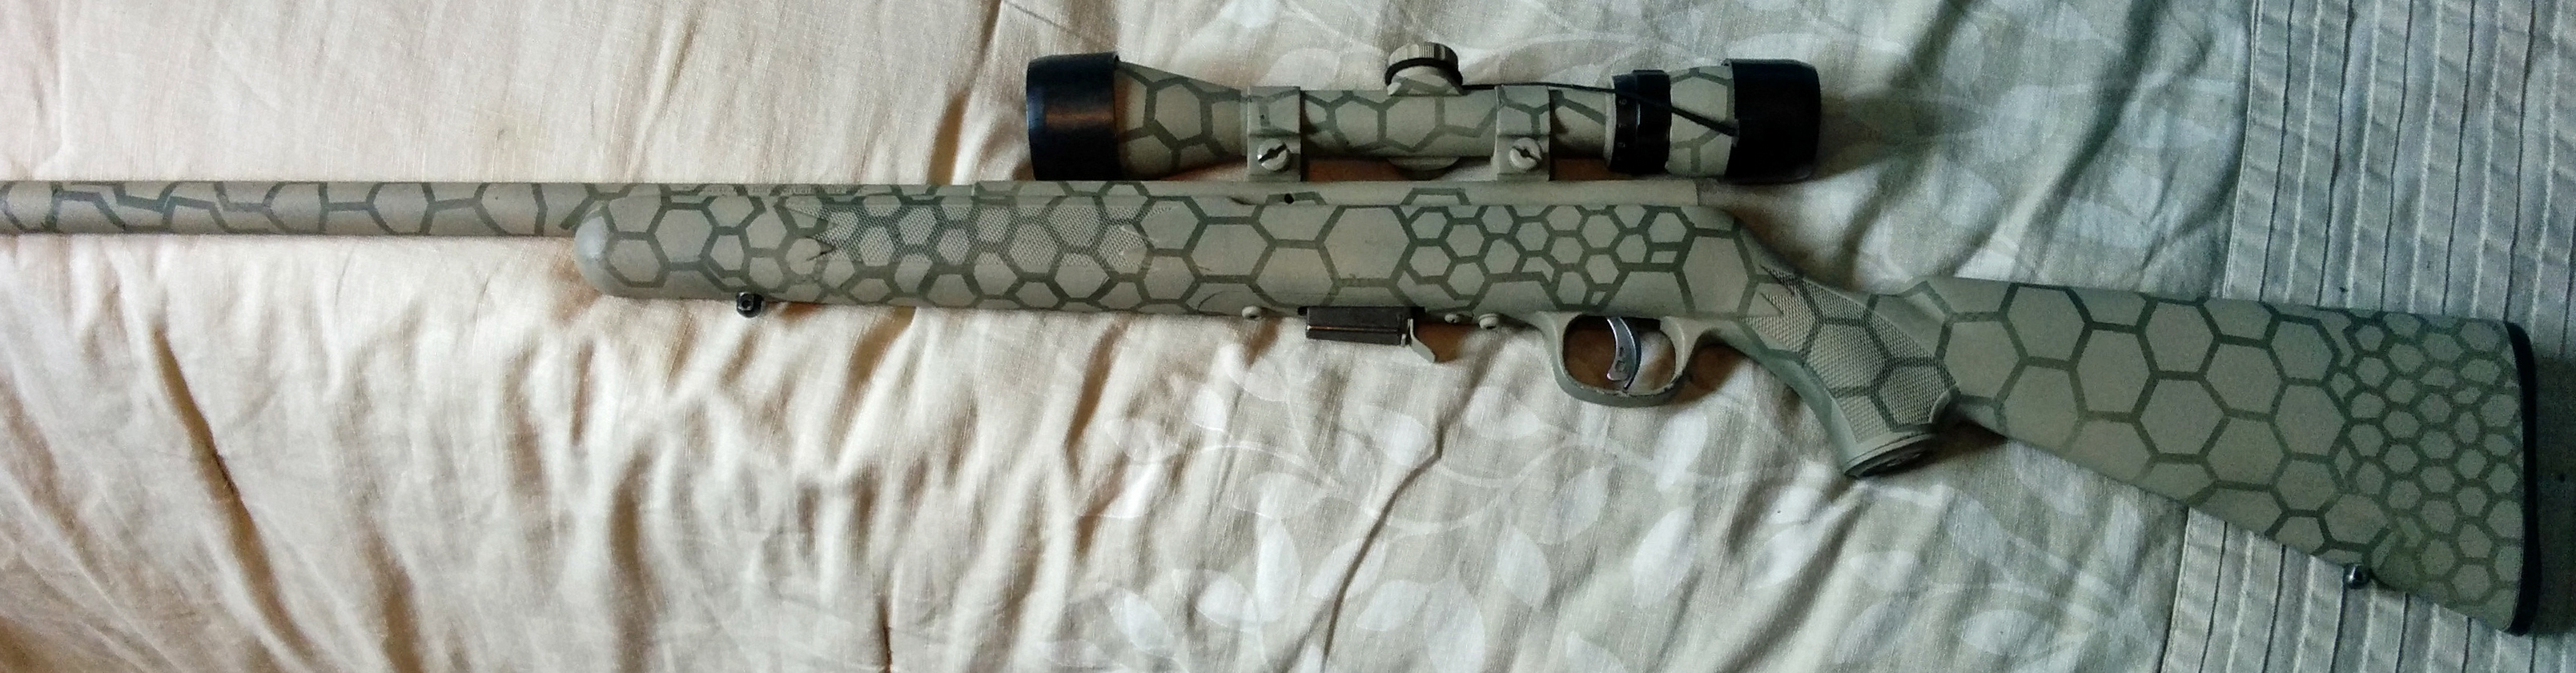 DIY: Too Much Time on Your Hands? Paint Your Gun. - AllOutdoor.com